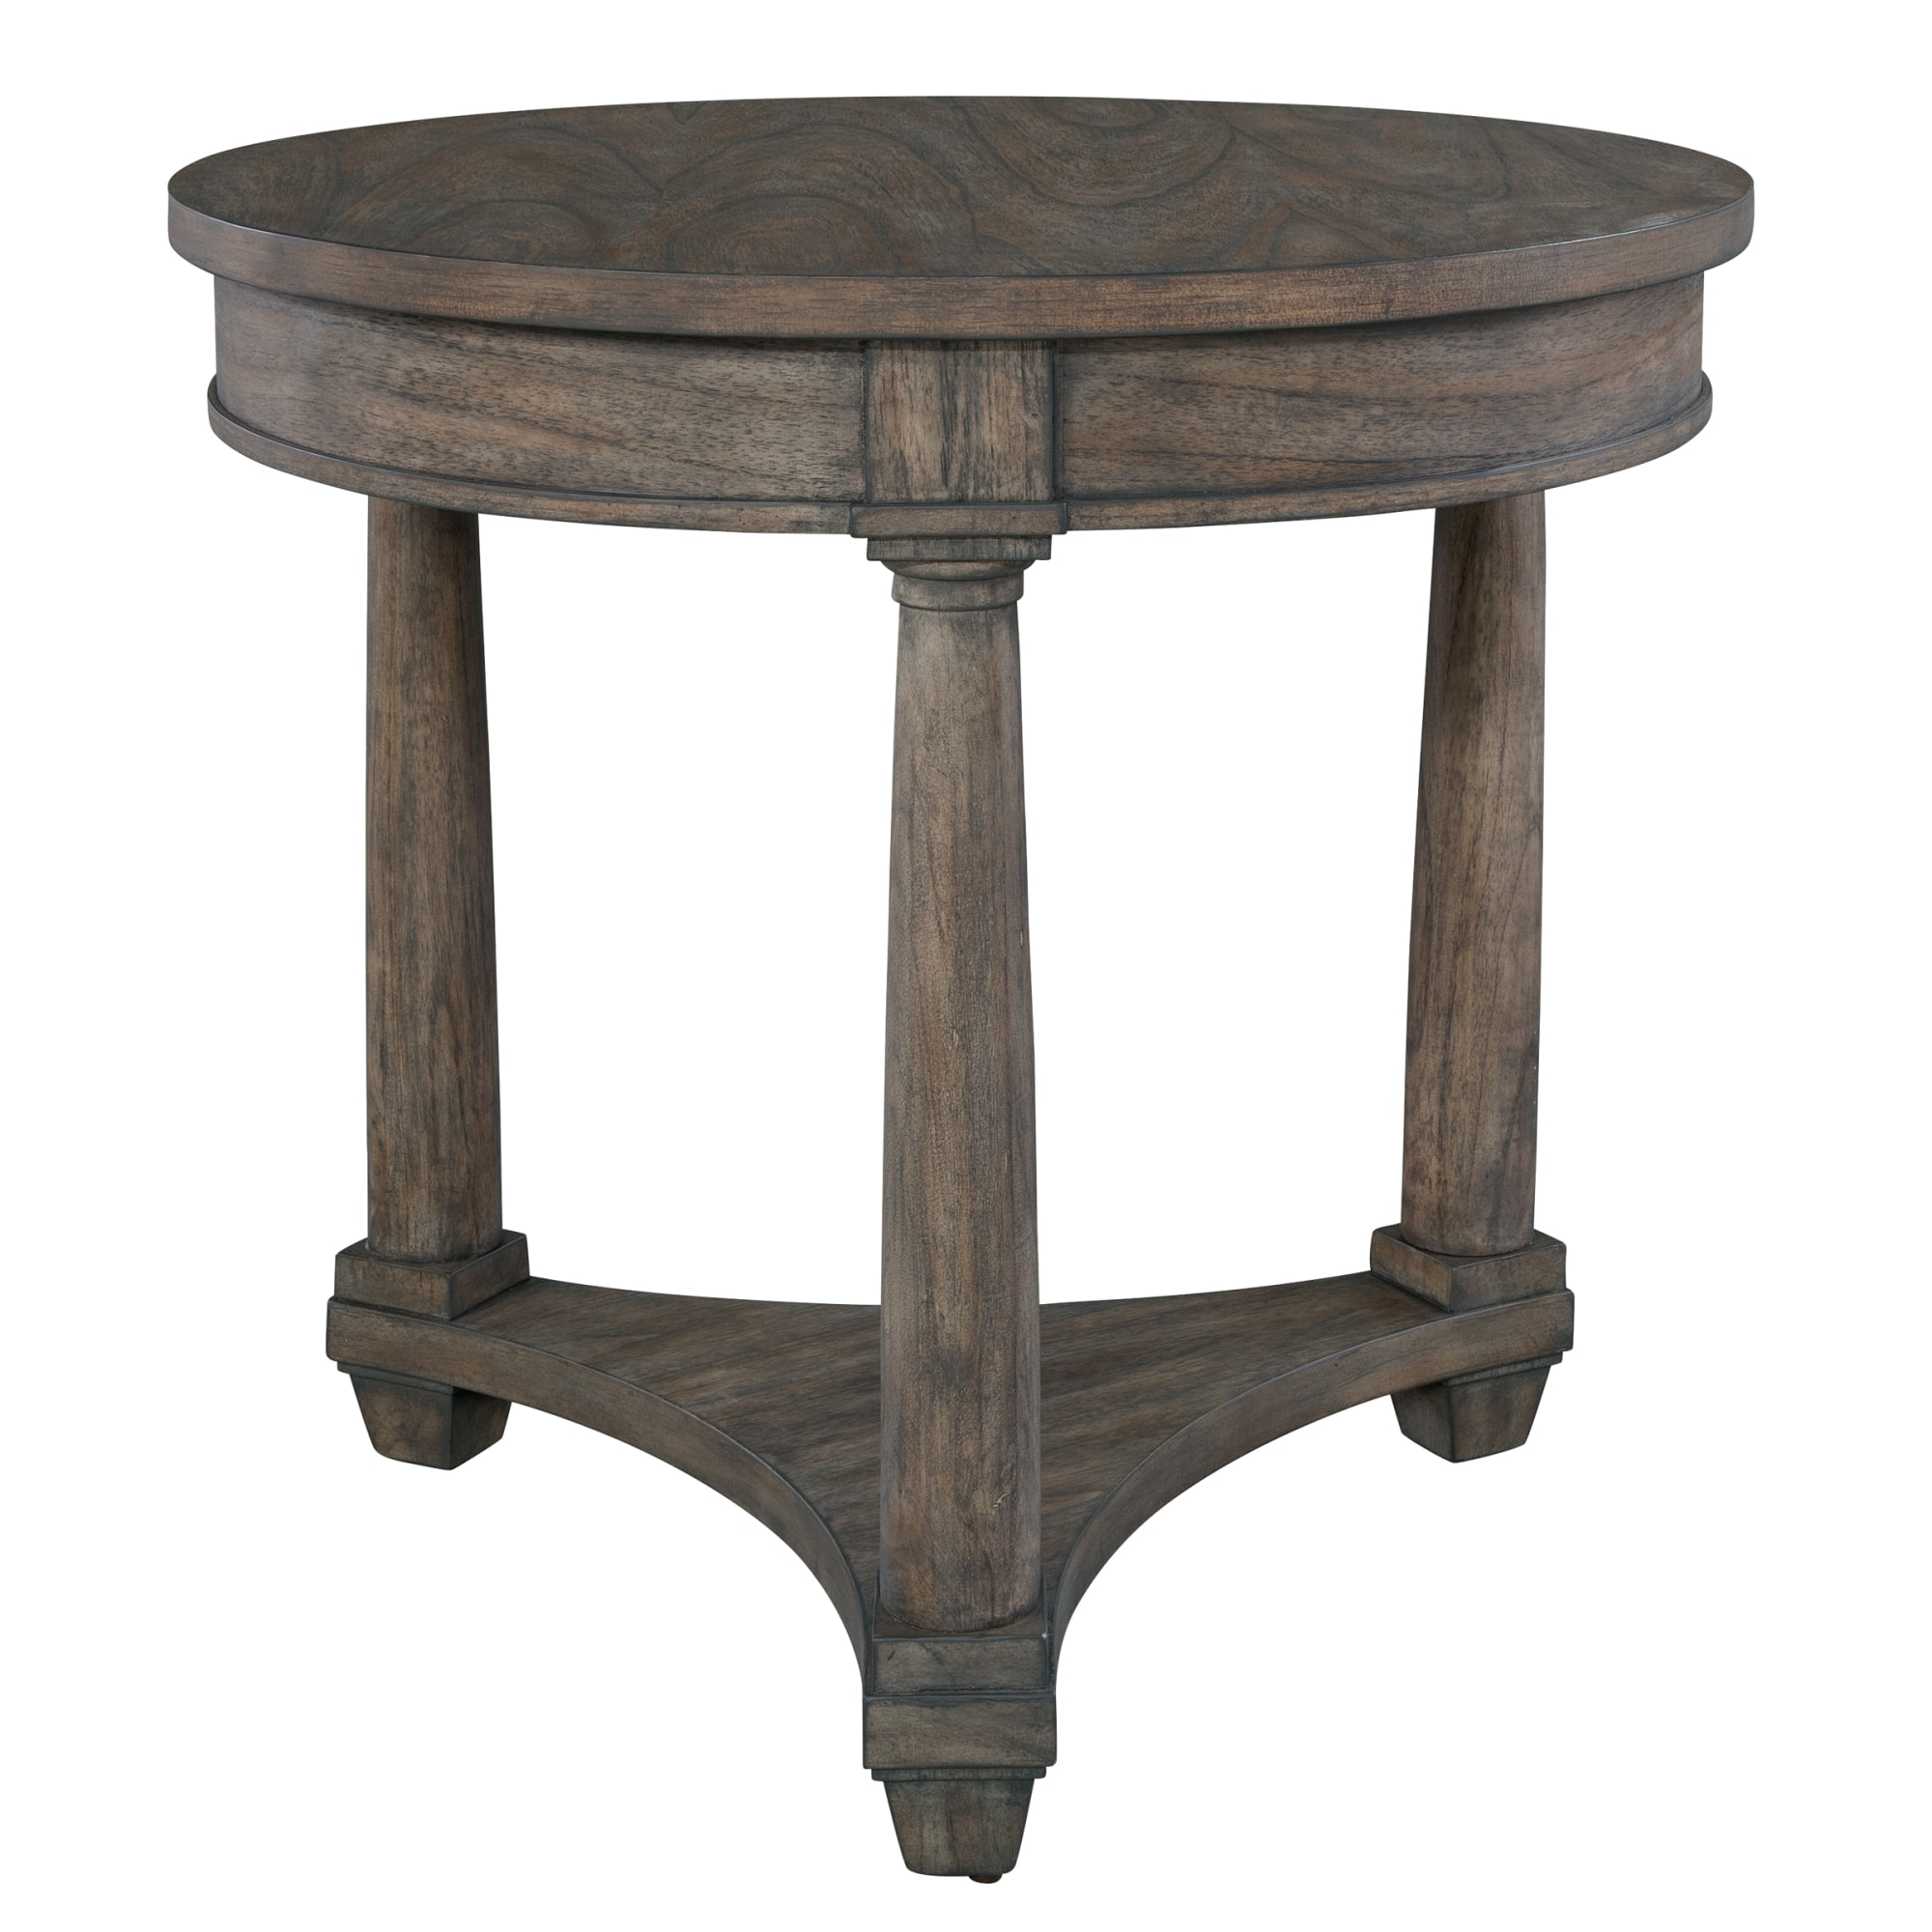 Image for 2-3504 Lincoln Park Round Lamp Table from Hekman Official Website